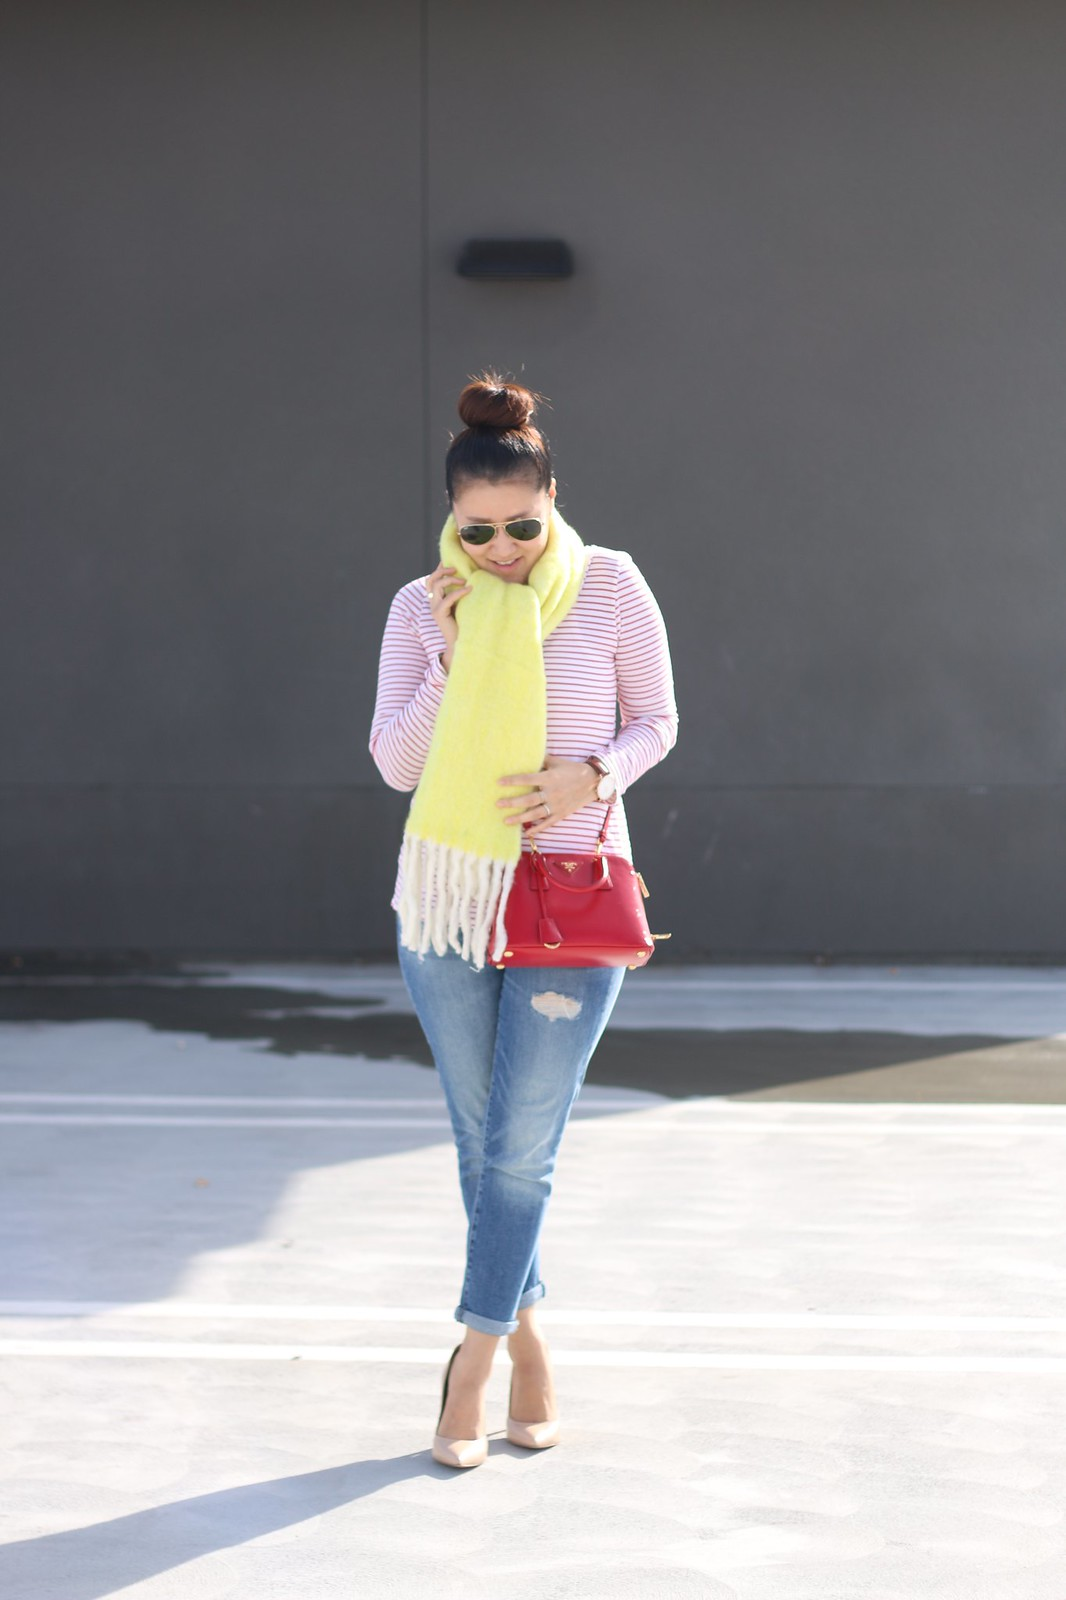 simplyxclassic, stripes, anthropologie, mittens, casual, chic, blogger, fashion, lifestyle, blog, mommy, orange county, prada bag, how to wear stripes, fall, winter, gap jeans, style, yellow scarf, daniel wellington